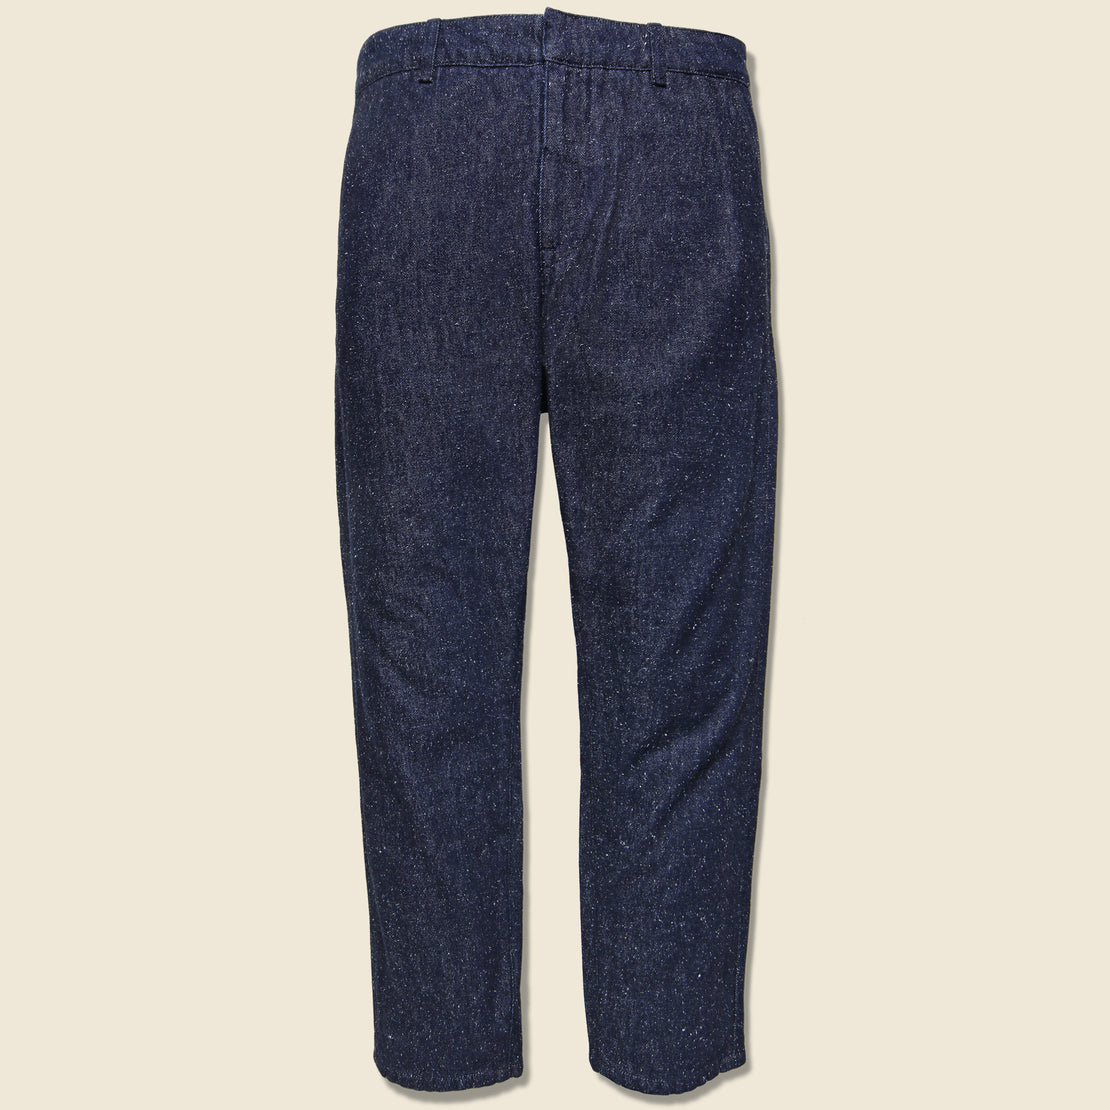 040c86322f94 Levis Made & Crafted Taper Trouser - Neppy Denim ...